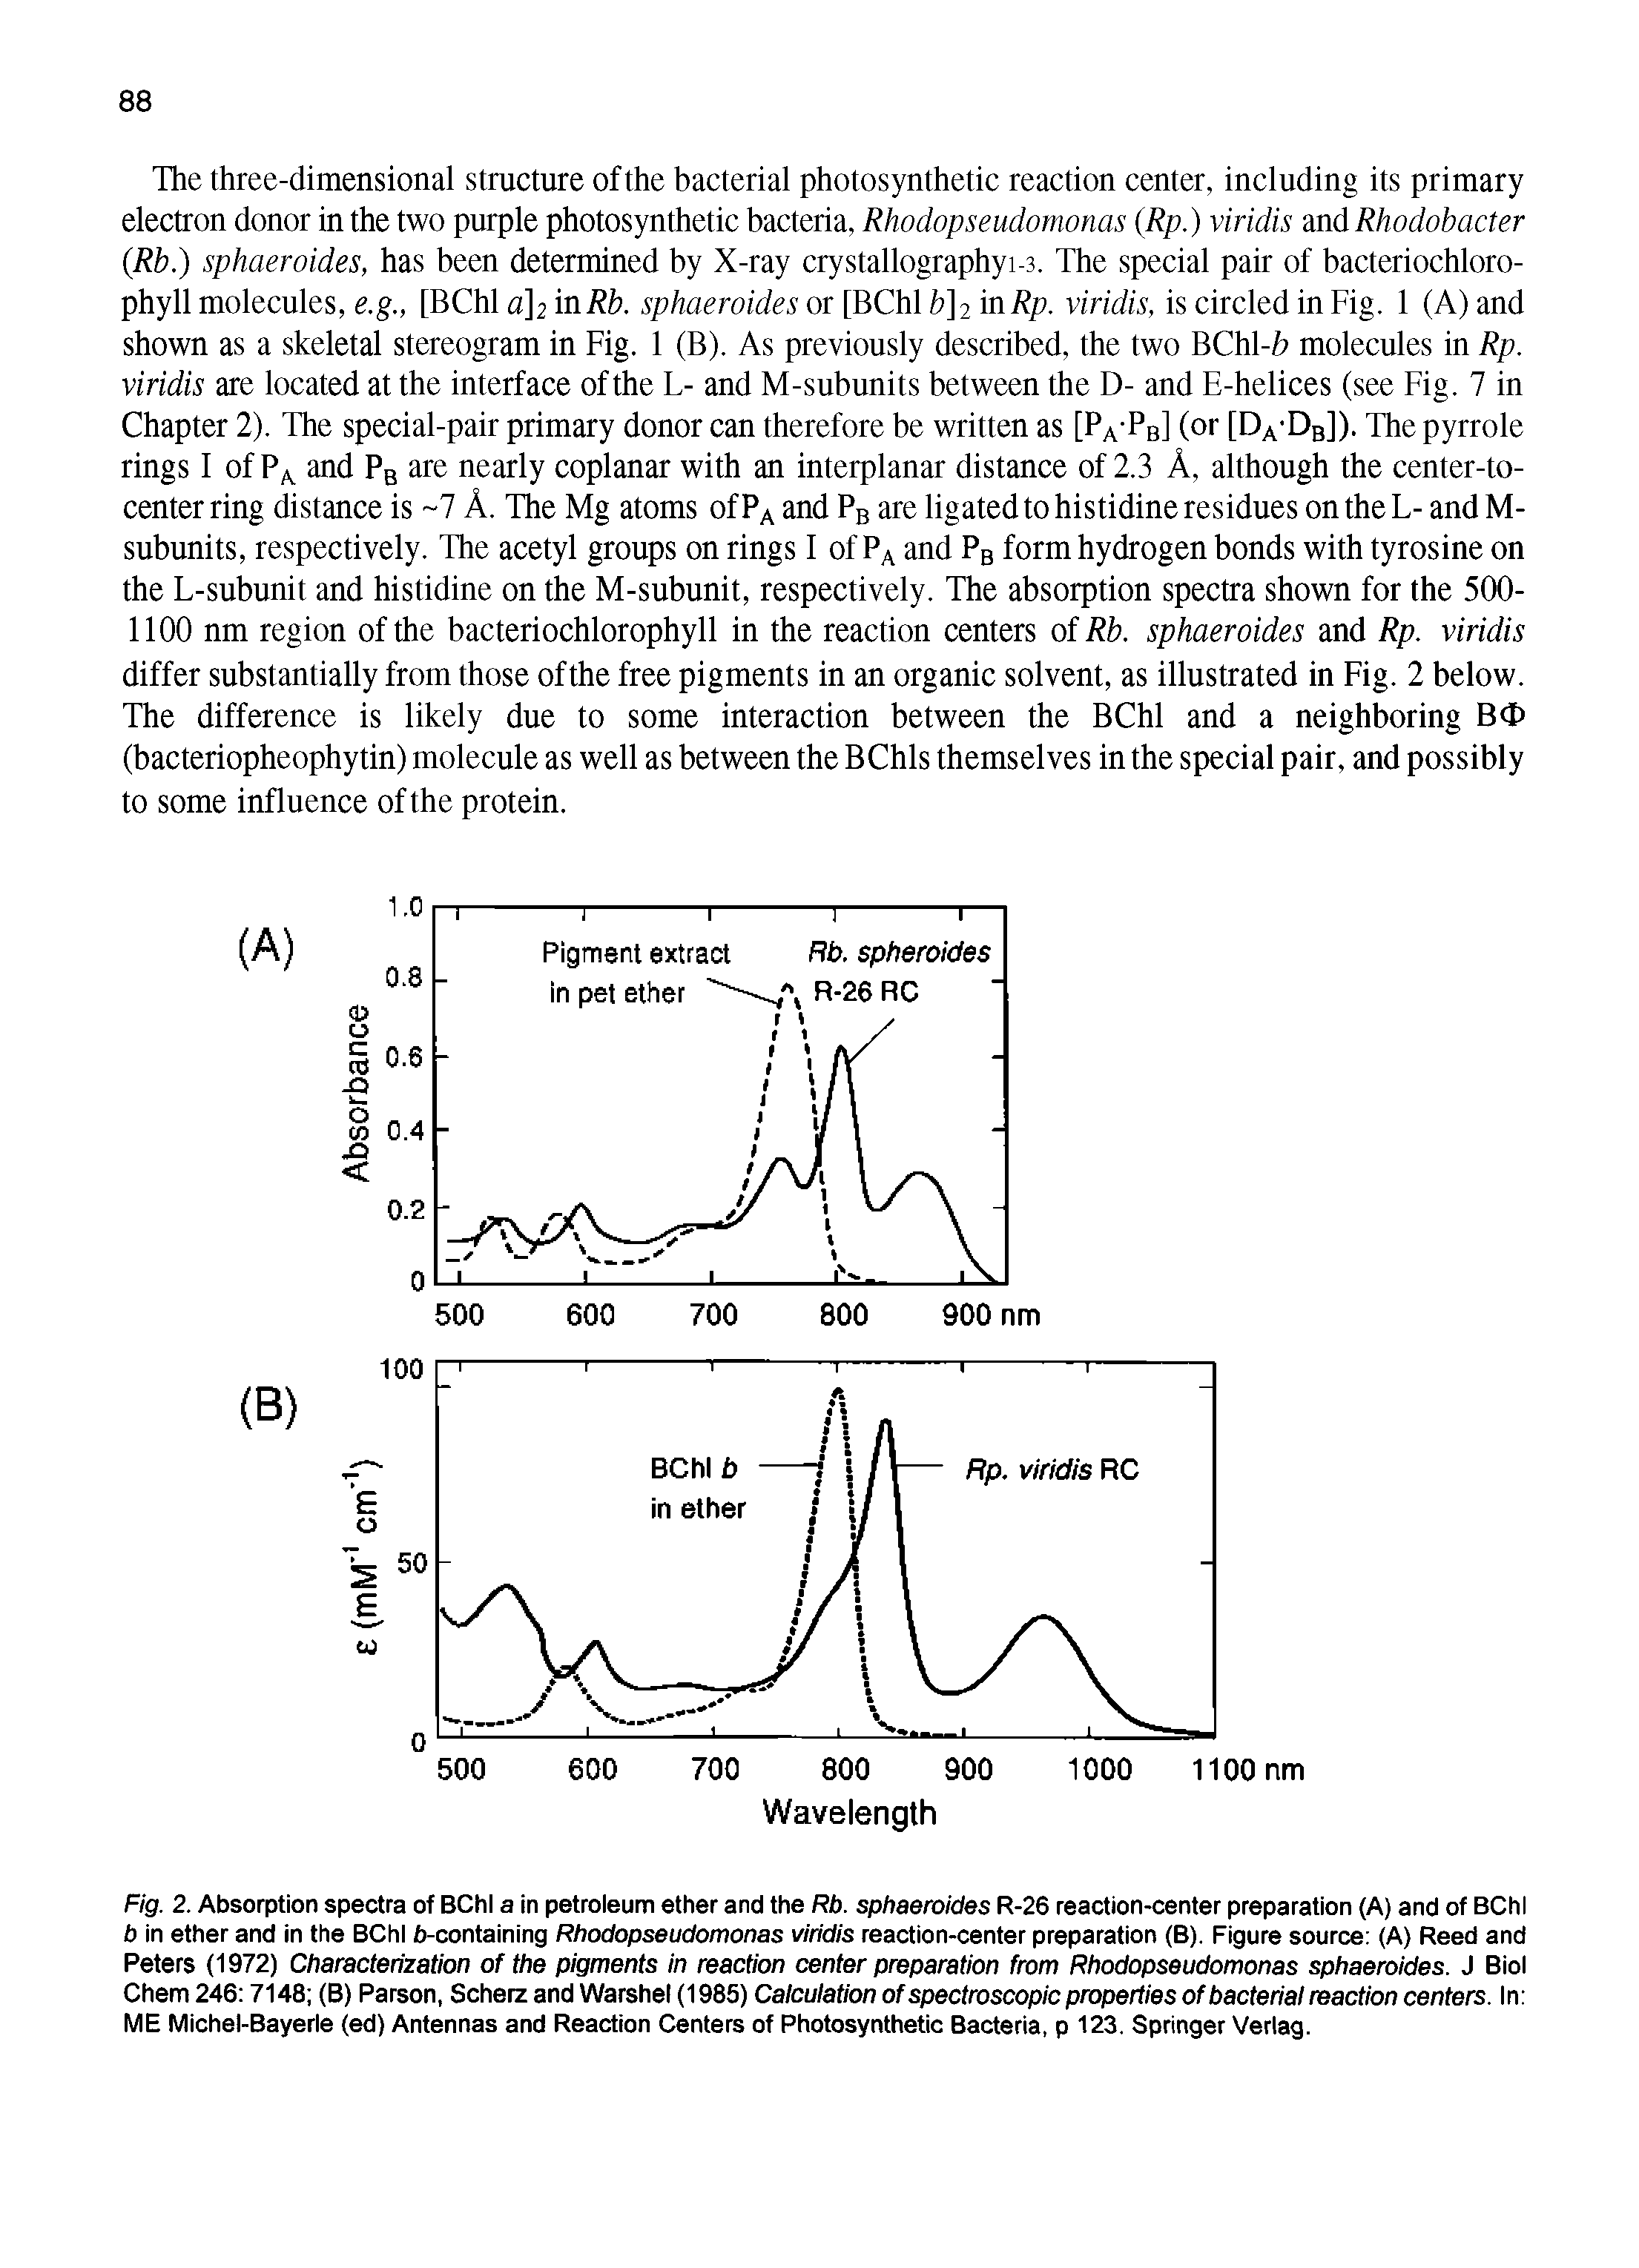 "Fig. 2. <a href=""/info/absorption_spectra"">Absorption spectra</a> of BChl a in <a href=""/info/petroleum_ether"">petroleum ether</a> and the Rb. sphaeroides R-26 <a href=""/info/reaction_center"">reaction-center</a> preparation (A) and of BChl b in ether and in the BChl b-containing Rhodopseudomonas viridis reaction-center preparation (B). <a href=""/info/source_of_figures"">Figure source</a> (A) Reed and Peters (1972) Characterization of the pigments in <a href=""/info/reaction_center"">reaction center</a> <a href=""/info/preparation_from"">preparation from</a> <a href=""/info/rhodopseudomonas_sphaeroides"">Rhodopseudomonas sphaeroides</a>. J Biol Chem 246 7148 (B) Parson, Scherz and Warshel (1985) Calculation of <a href=""/info/property_spectroscopic"">spectroscopic properties</a> of <a href=""/info/bacterial_reaction_centers"">bacterial reaction centers</a>. In ME Michel-Bayerle (ed) Antennas and <a href=""/info/reaction_center"">Reaction Centers</a> of <a href=""/info/bacteria_photosynthetic"">Photosynthetic Bacteria</a>, p 123. Springer Verlag."